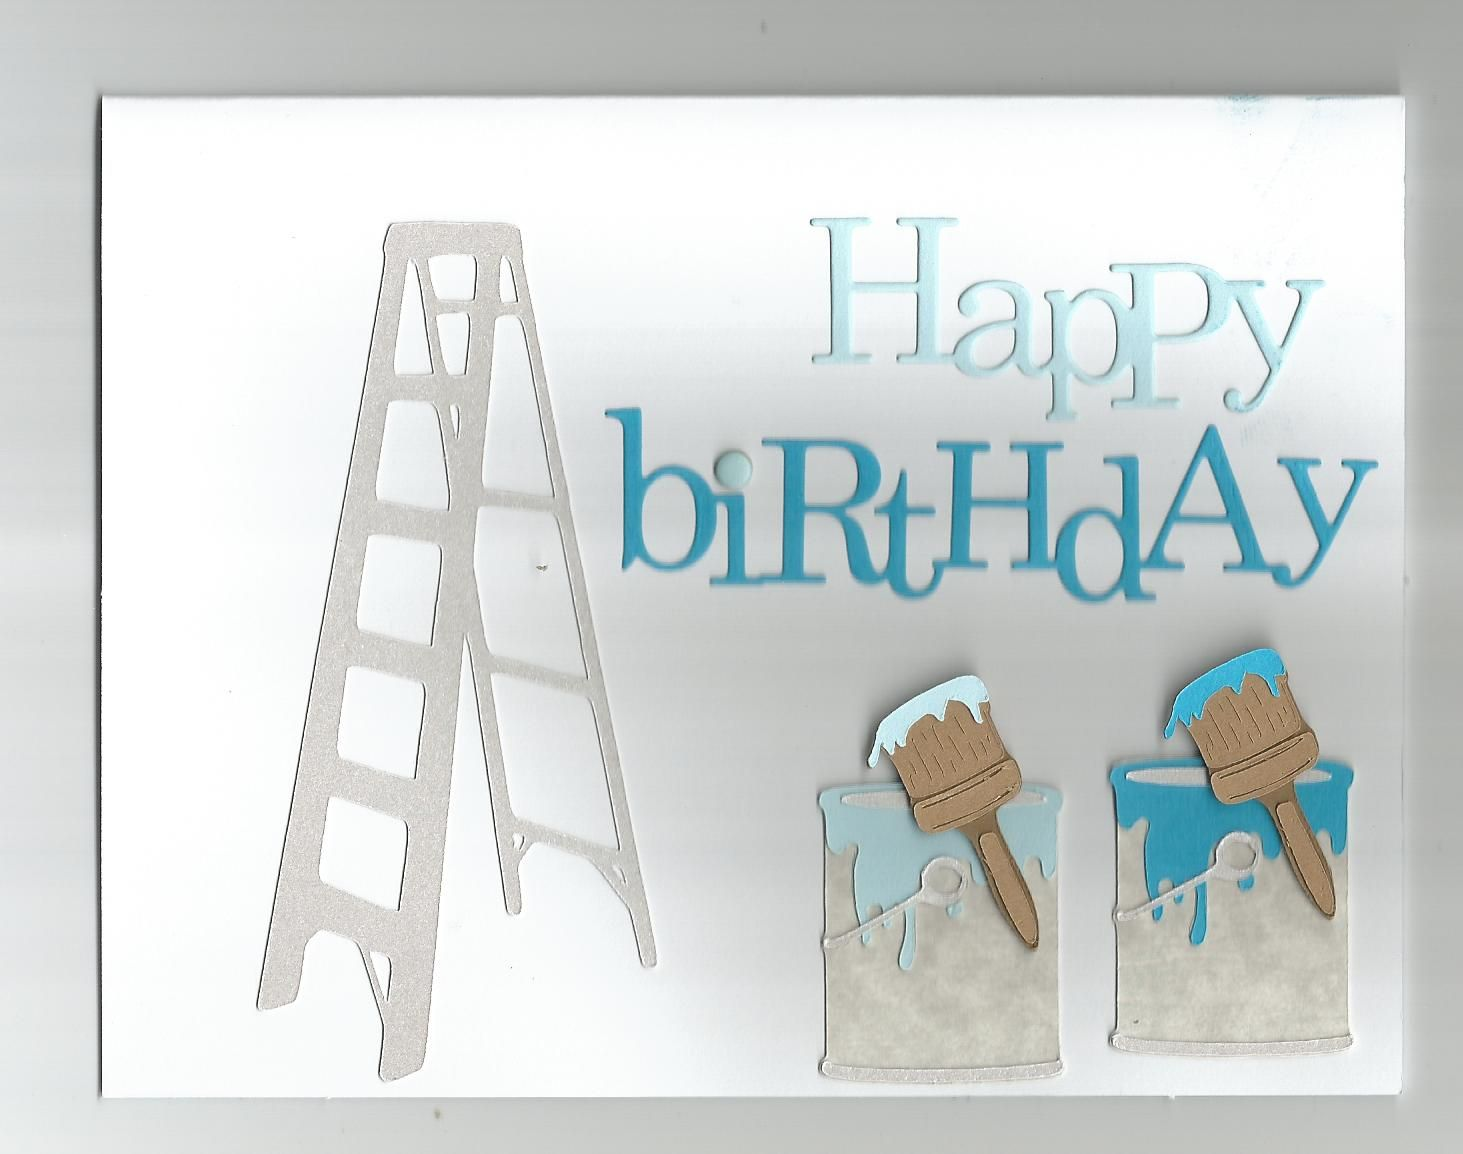 Birthday Card For Guy Going Into Interior Design Program At St